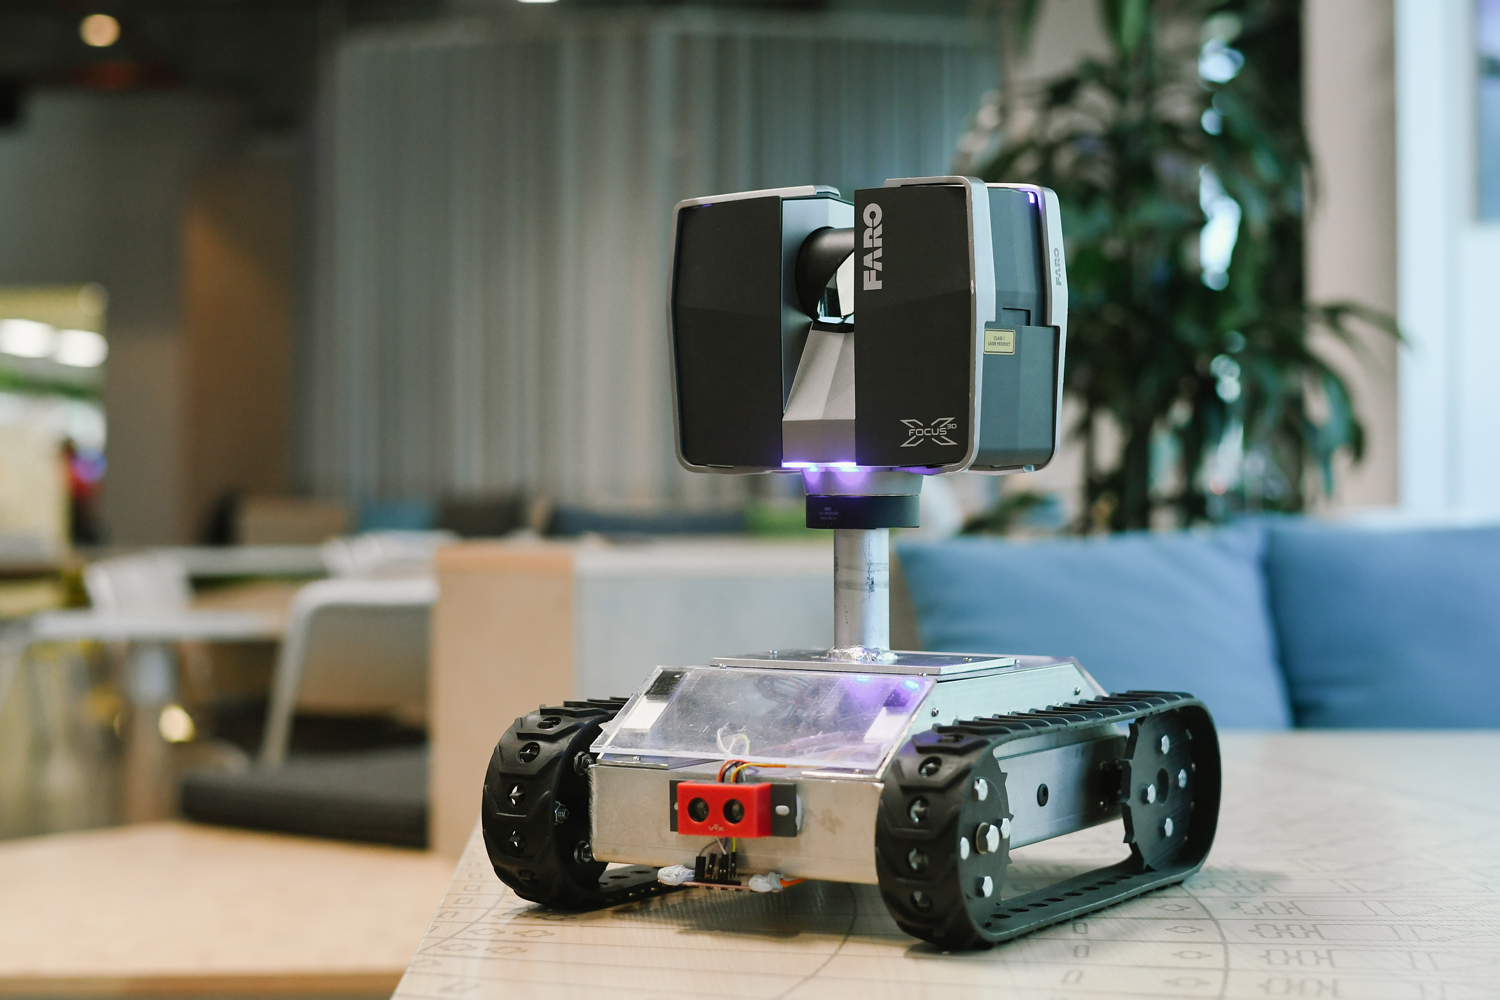 Hermes the robot, designed to scan construction sites